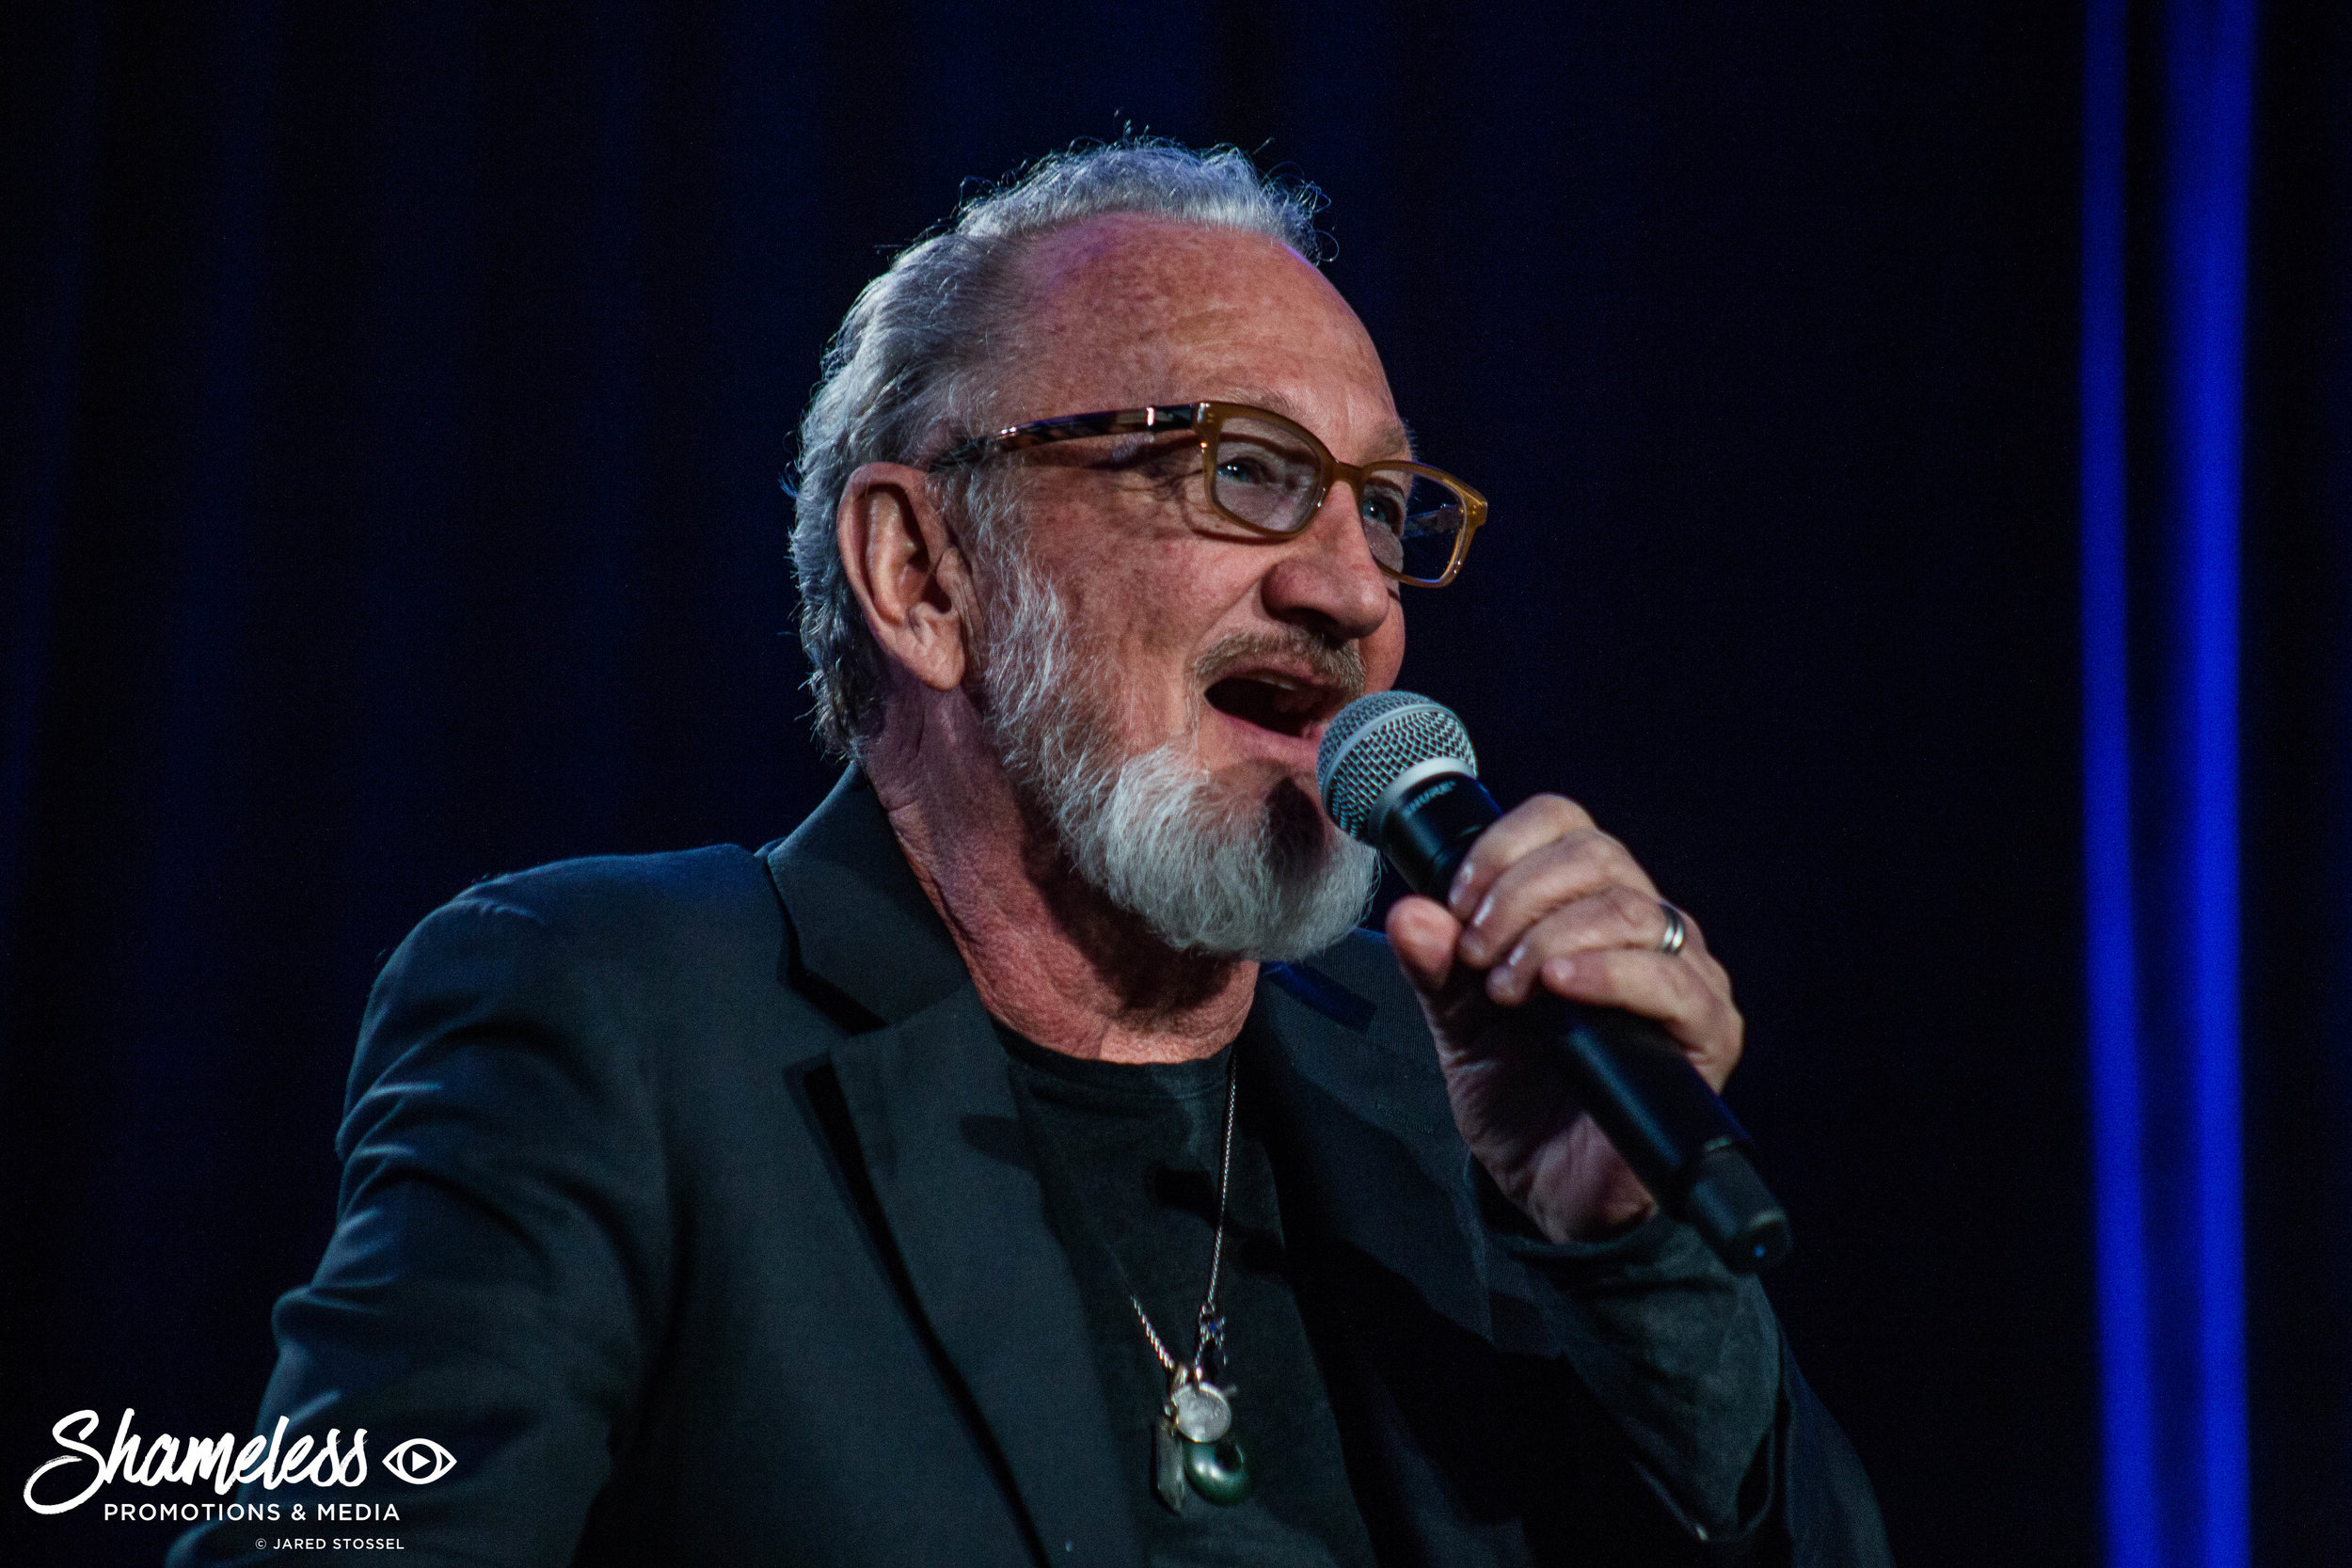 Robert Englund speaking at Silicon Valley Comic Con. April 22, 2017. Photo Credit: Jared Stossel.